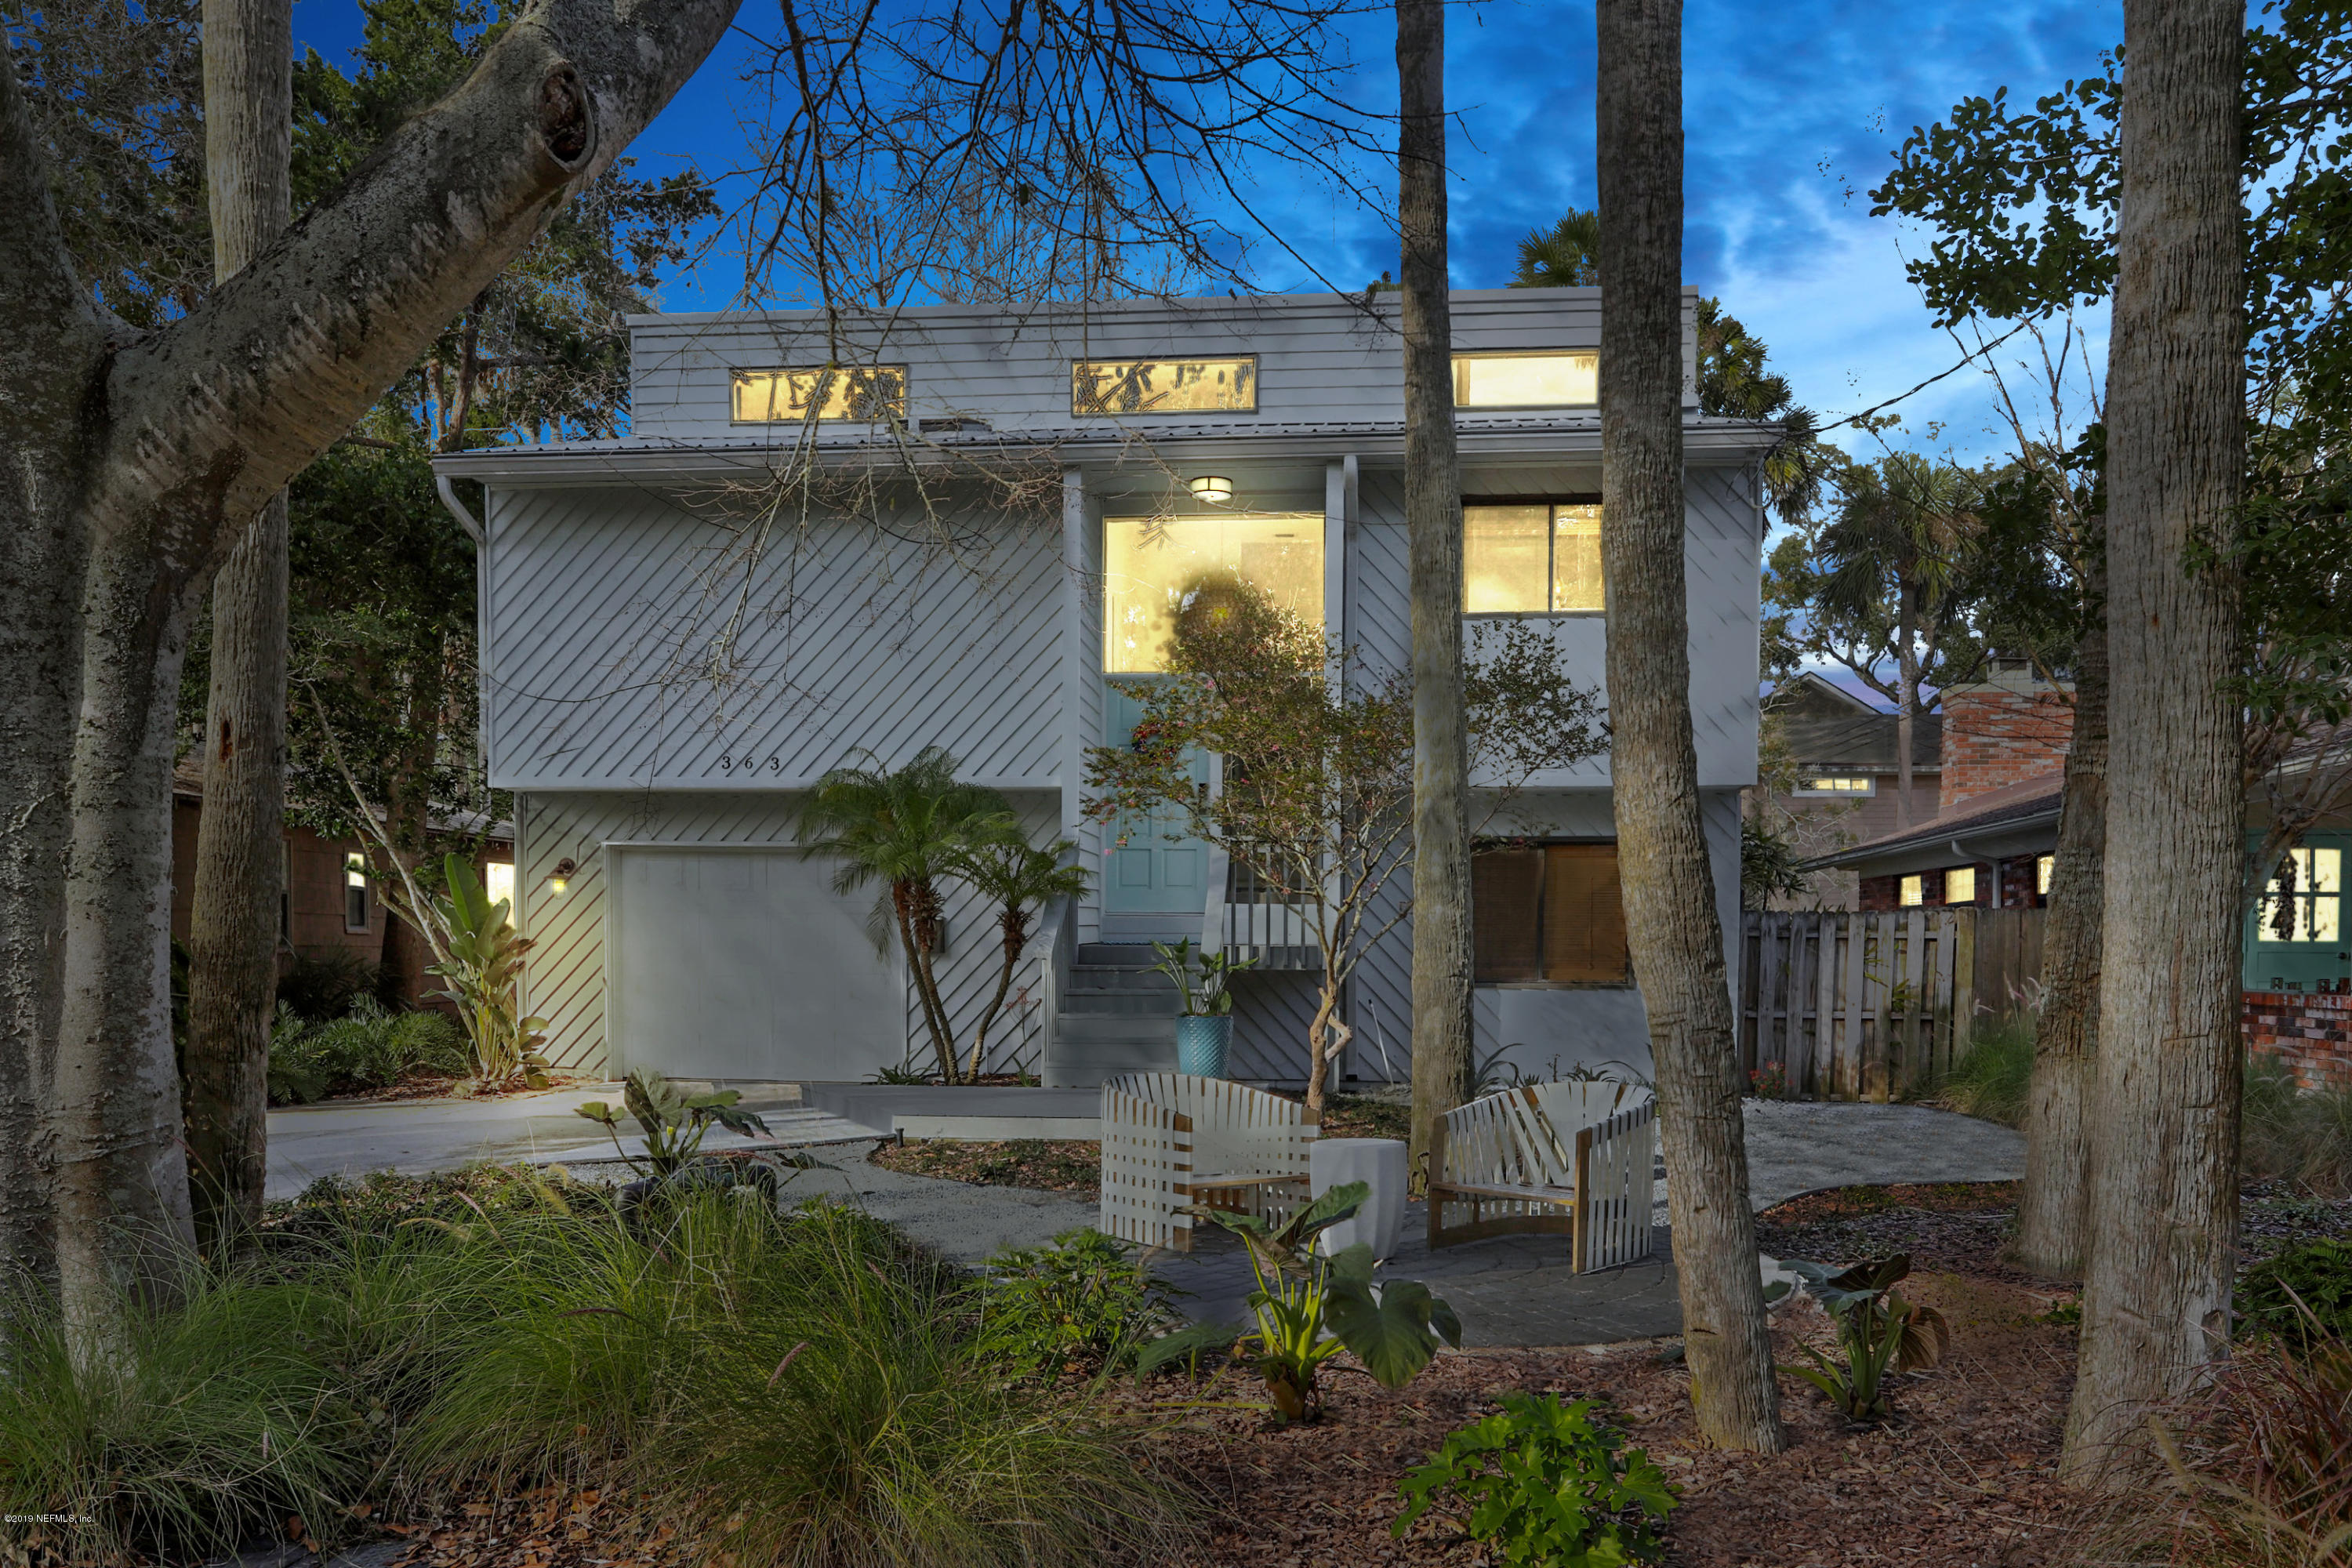 363 9TH, ATLANTIC BEACH, FLORIDA 32233, 4 Bedrooms Bedrooms, ,2 BathroomsBathrooms,Residential - single family,For sale,9TH,974179